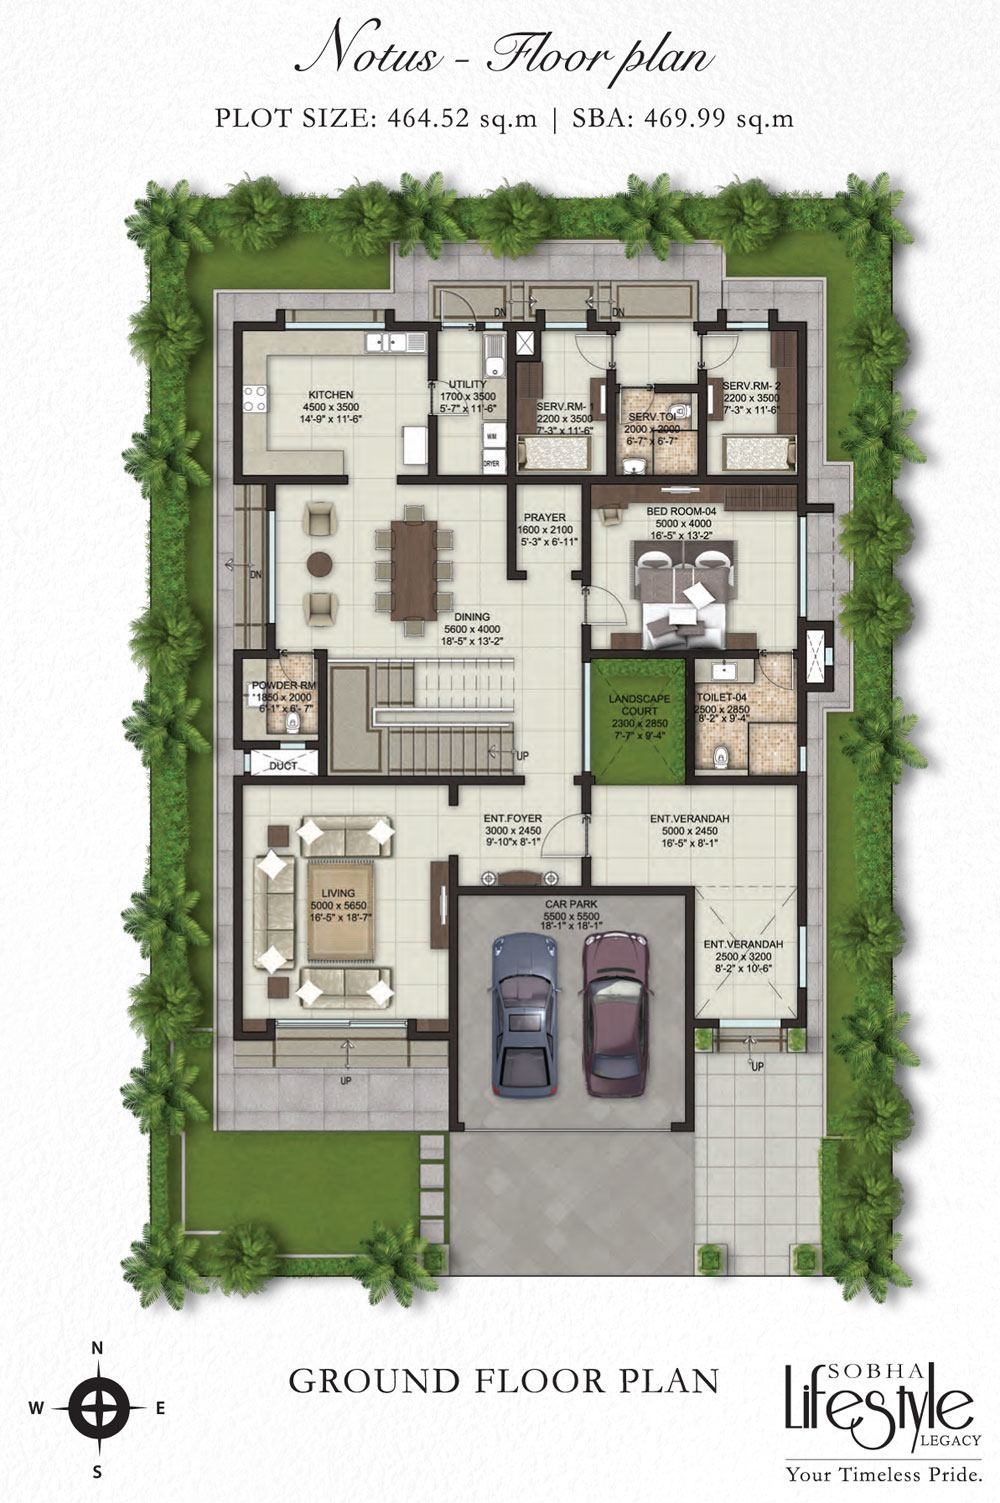 Sobha lifestyle legacy 4 bedroom villas bangalore for Villa design plan